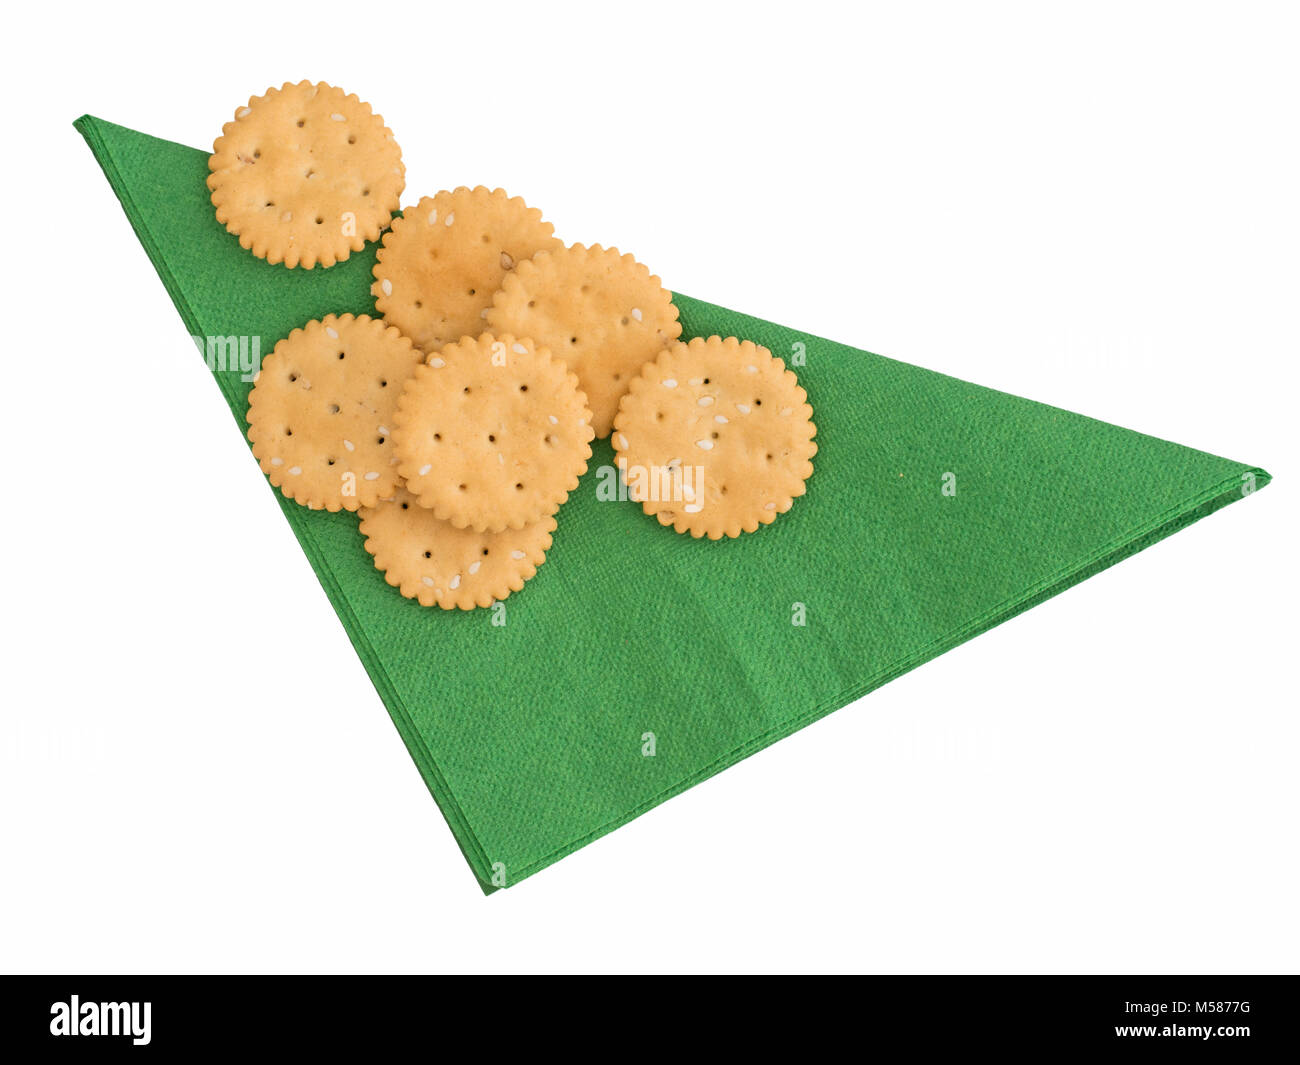 Gluten free cracker biscuits isolated on green paper serviette. - Stock Image